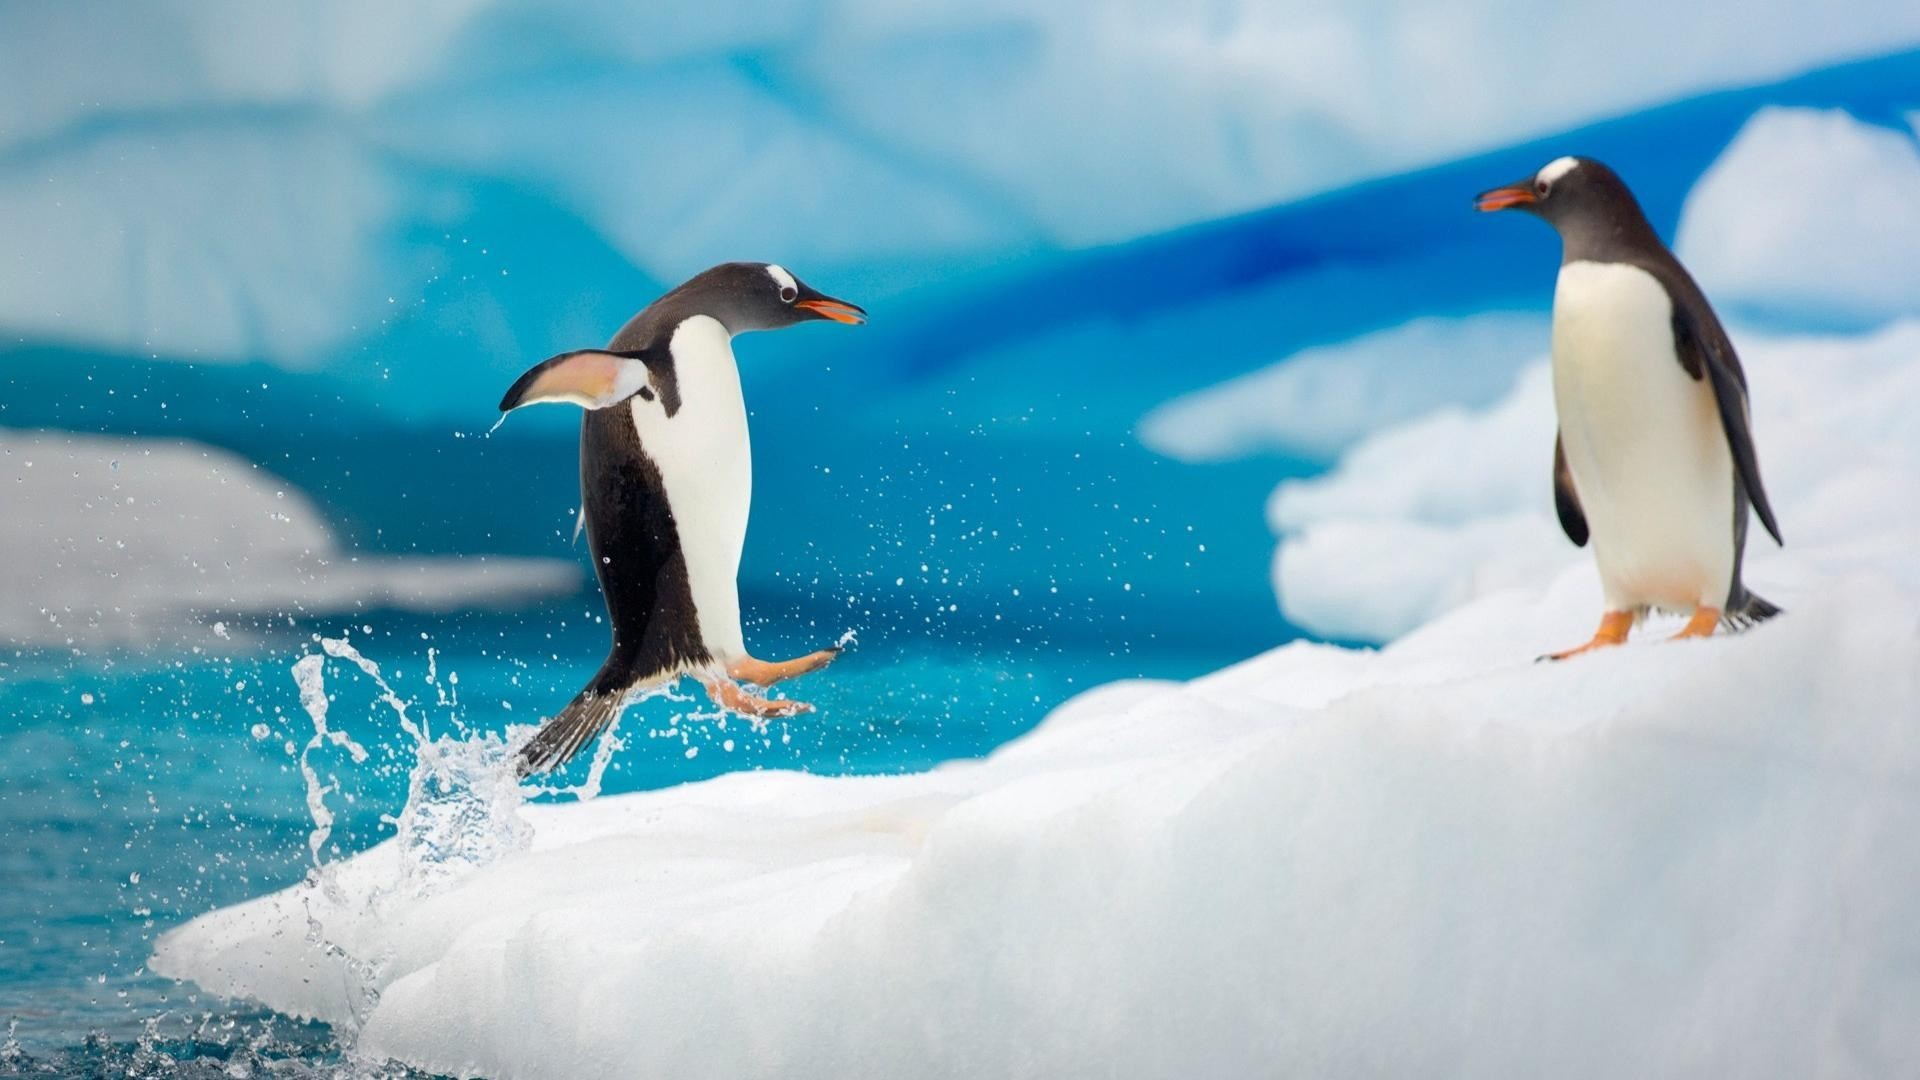 Baby Penguin Wallpapers Group Images Of Penguins Wallpapers Wallpapers)